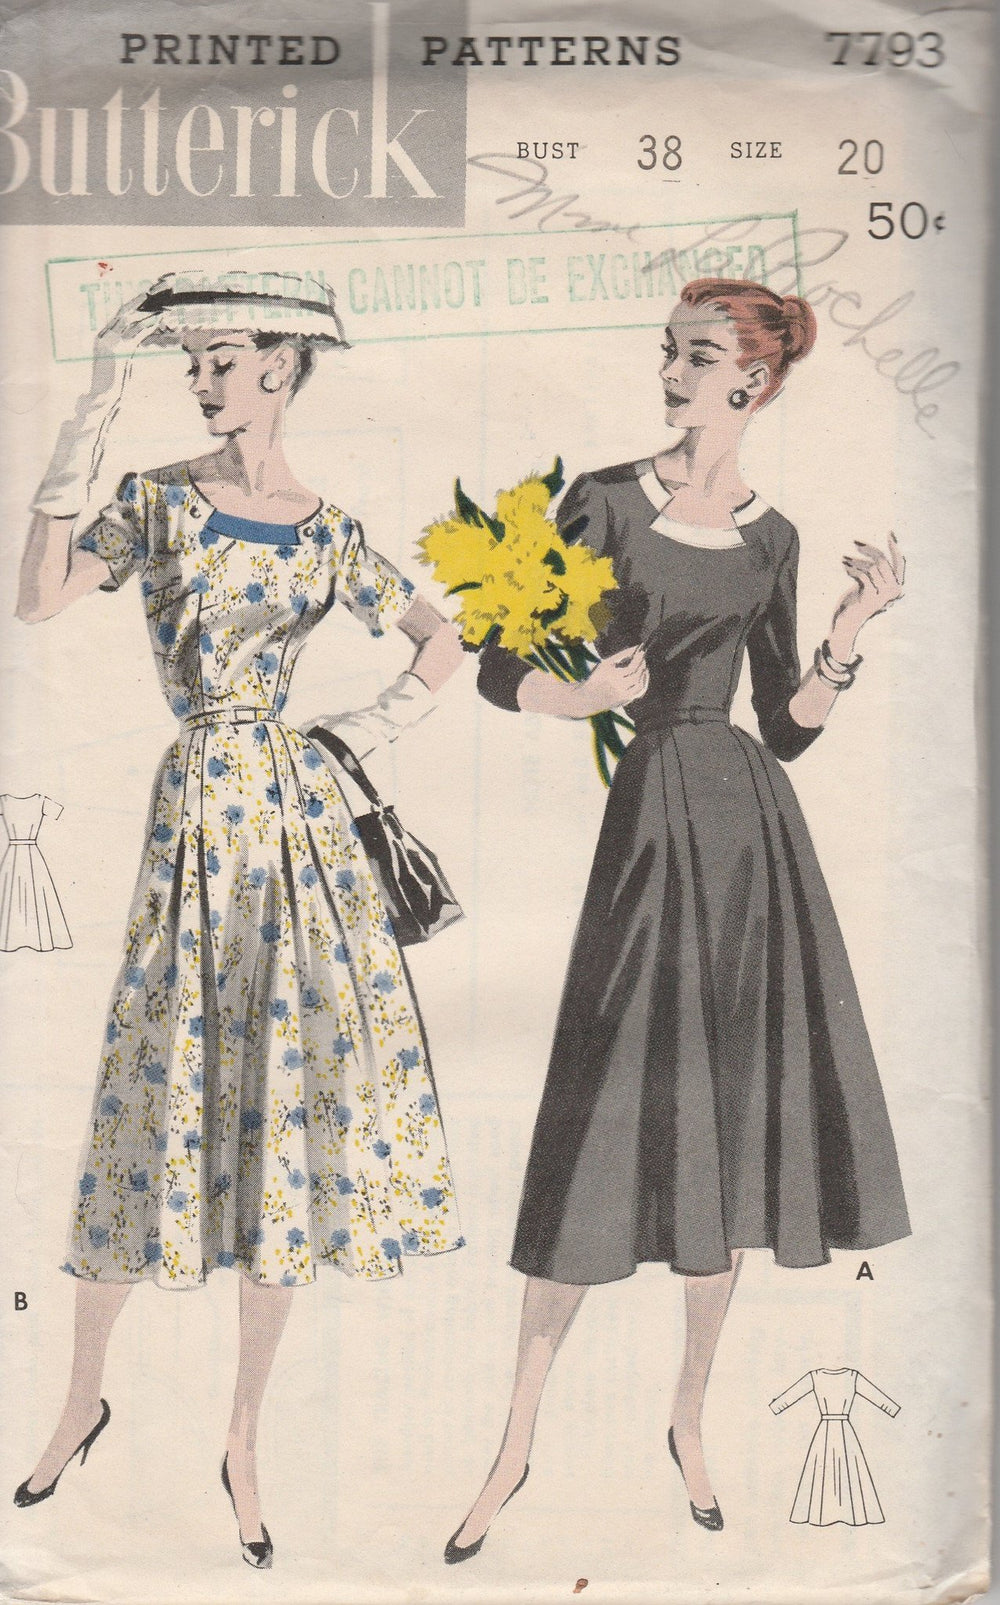 Butterick 7793 Ladies Dress Scooped Keyhole Neckline Vintage 1950's Sewing Pattern - VintageStitching - Vintage Sewing Patterns